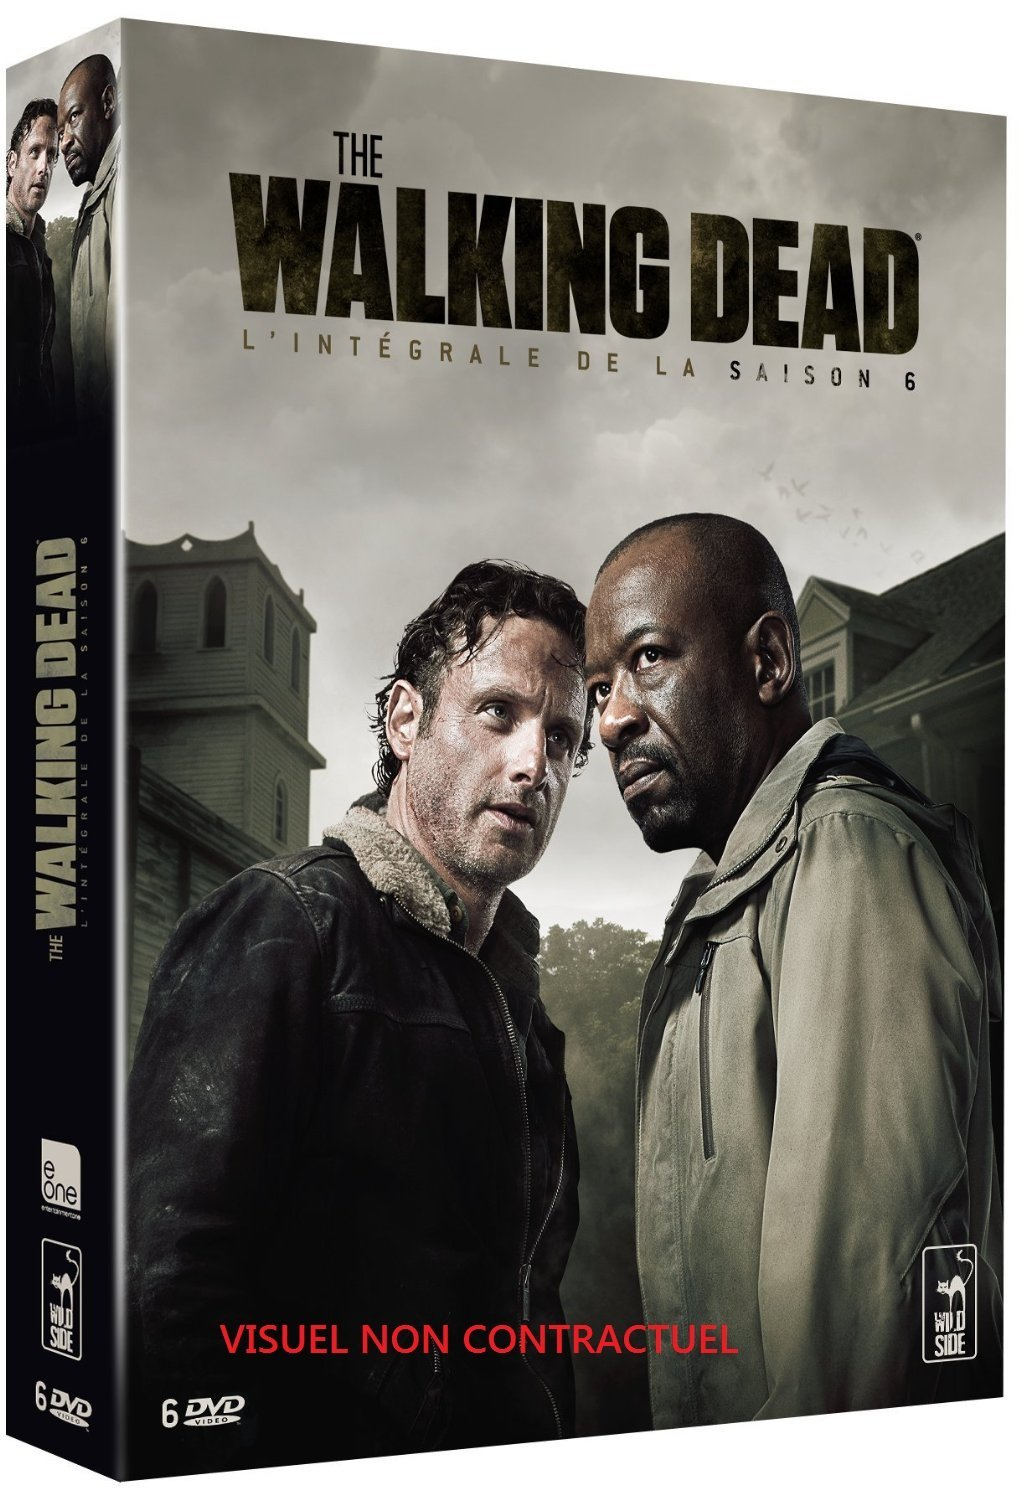 The Walking Dead - L'intégrale de la saison 6